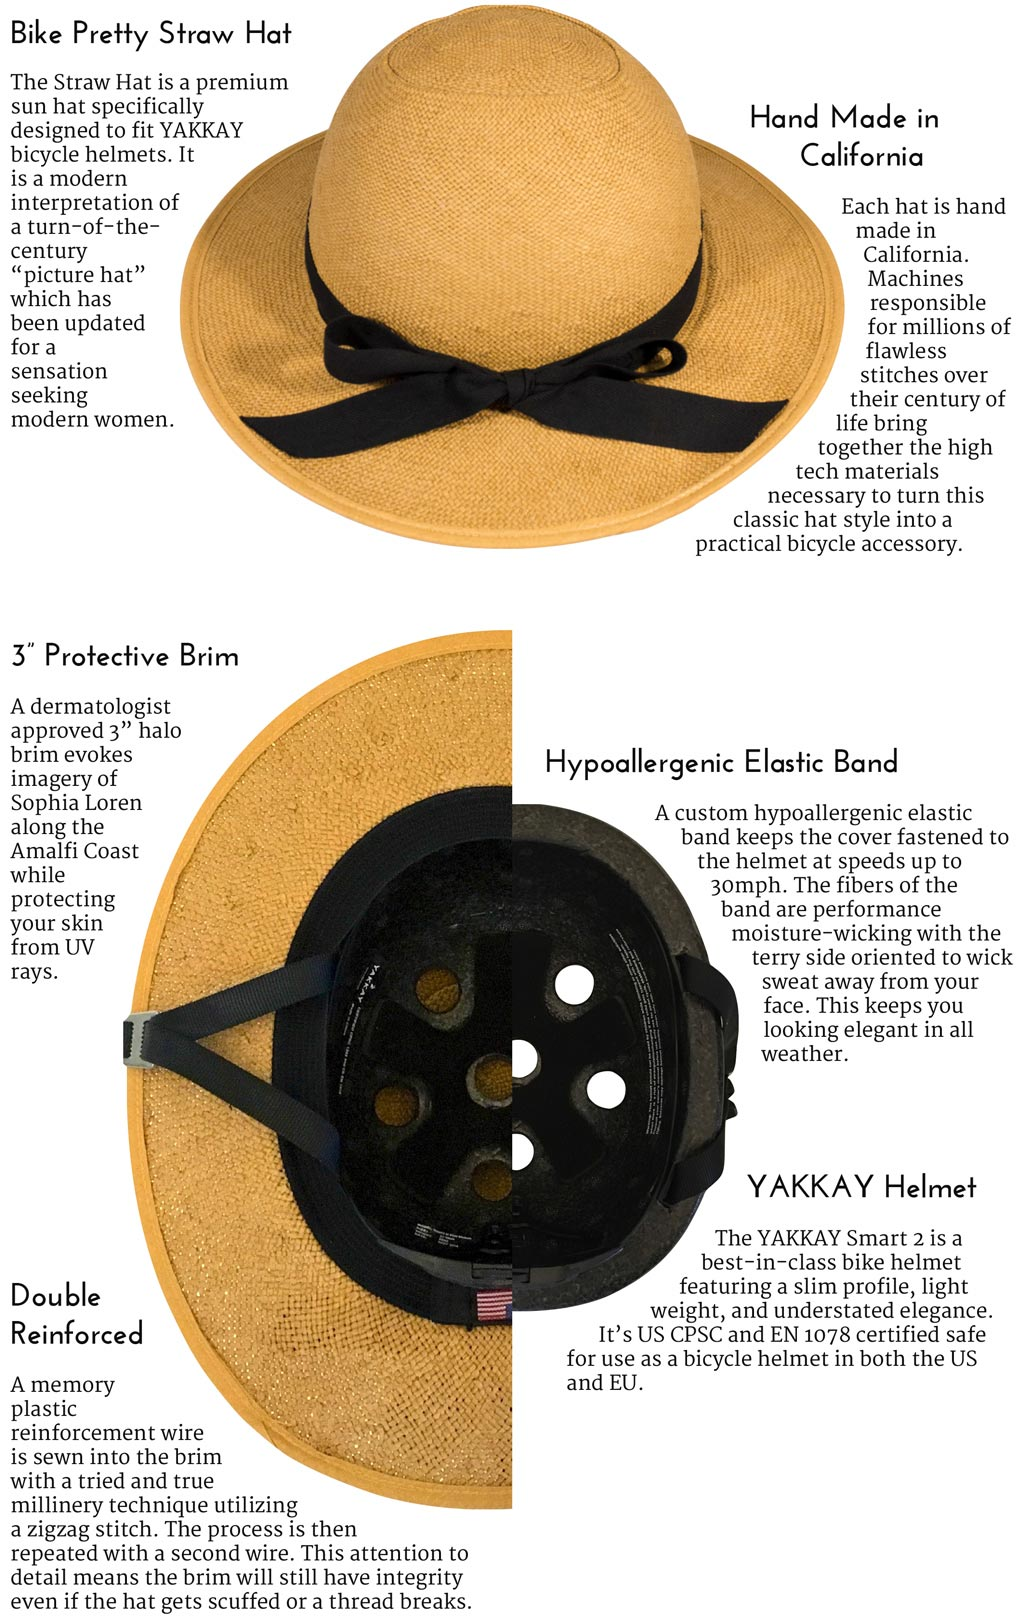 About the Straw Hat Bike Helmet